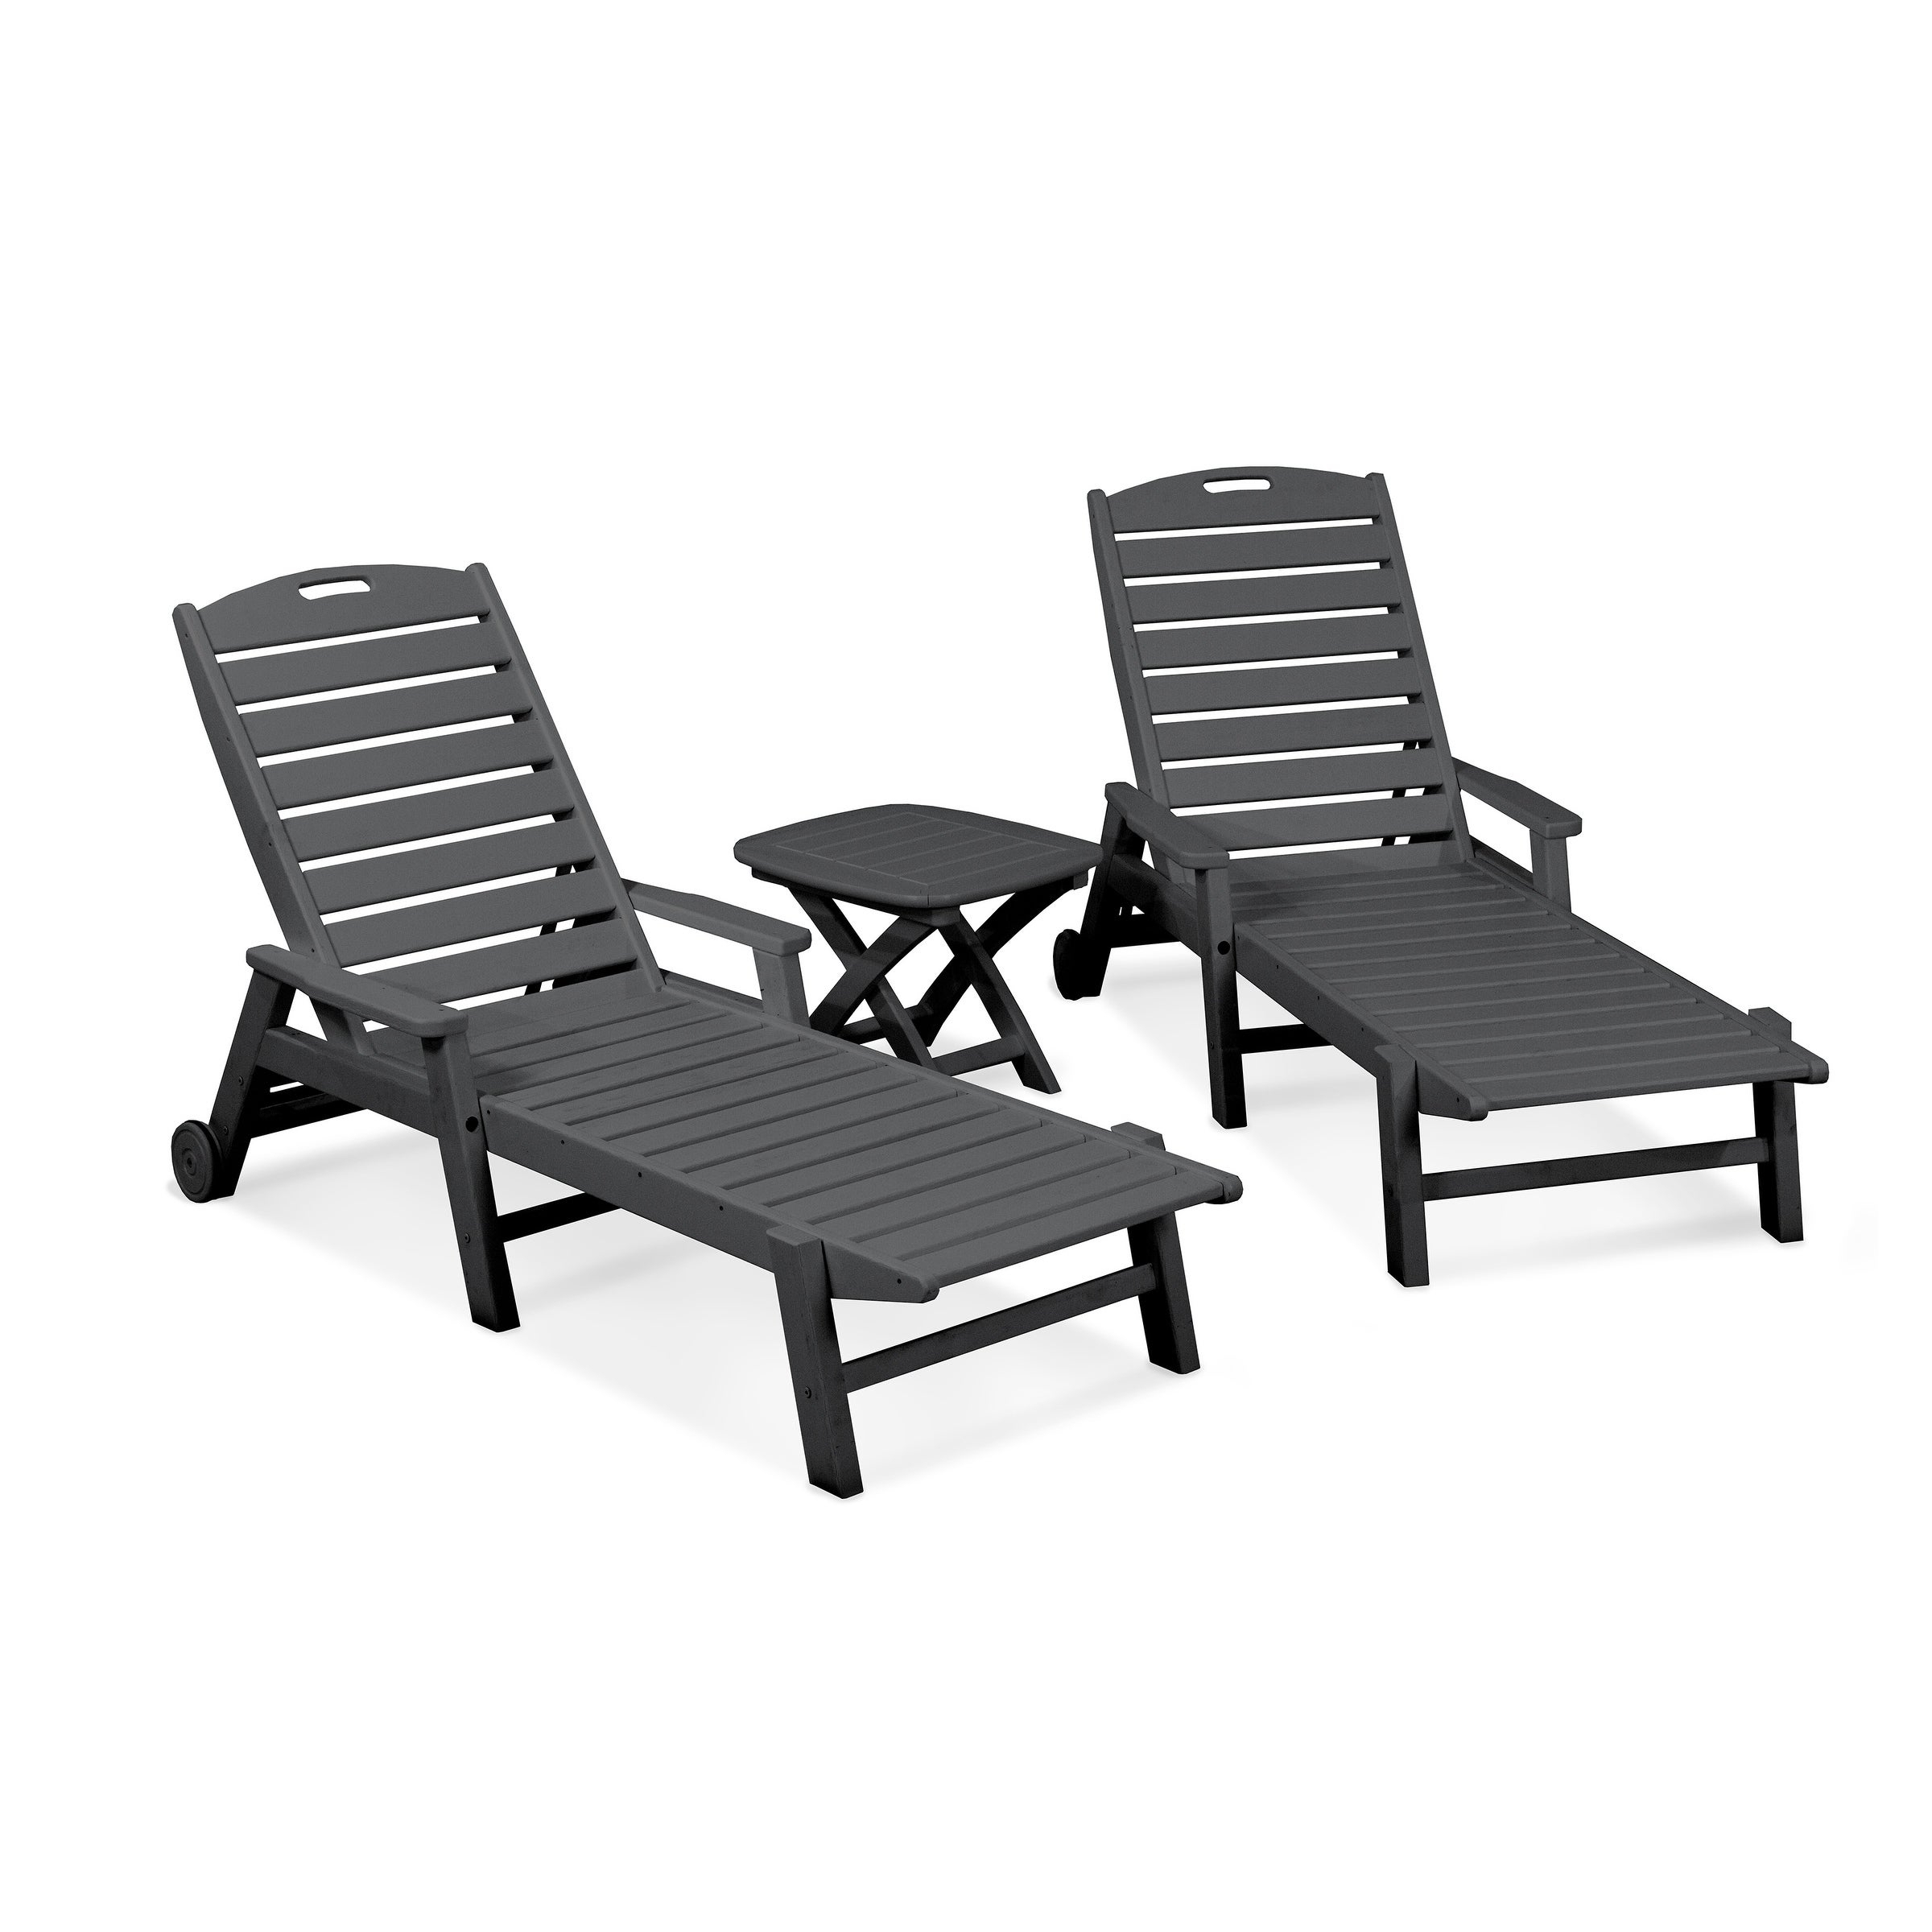 Polywood® Nautical 3 Piece Outdoor Chaise Lounge Set With Wheels And Table Pertaining To Well Liked Nautical Outdoor Chaise Lounges With Arms (View 5 of 25)